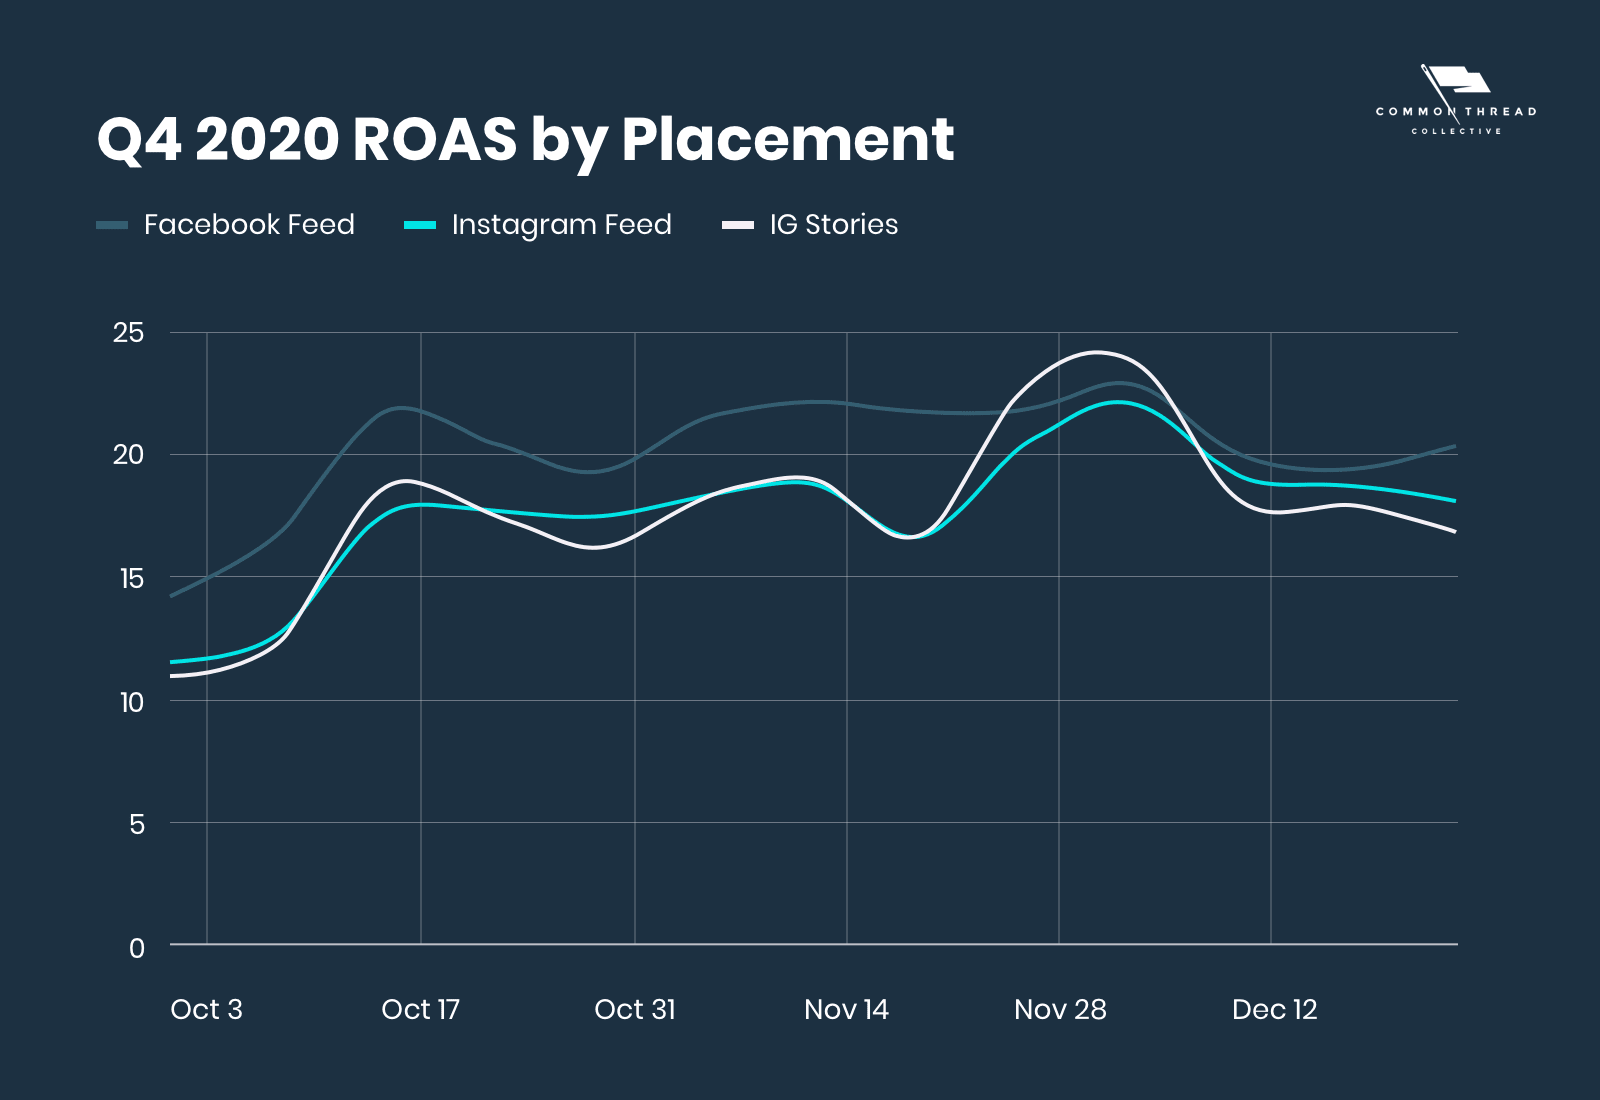 Q4 2020 ROAS by Placement